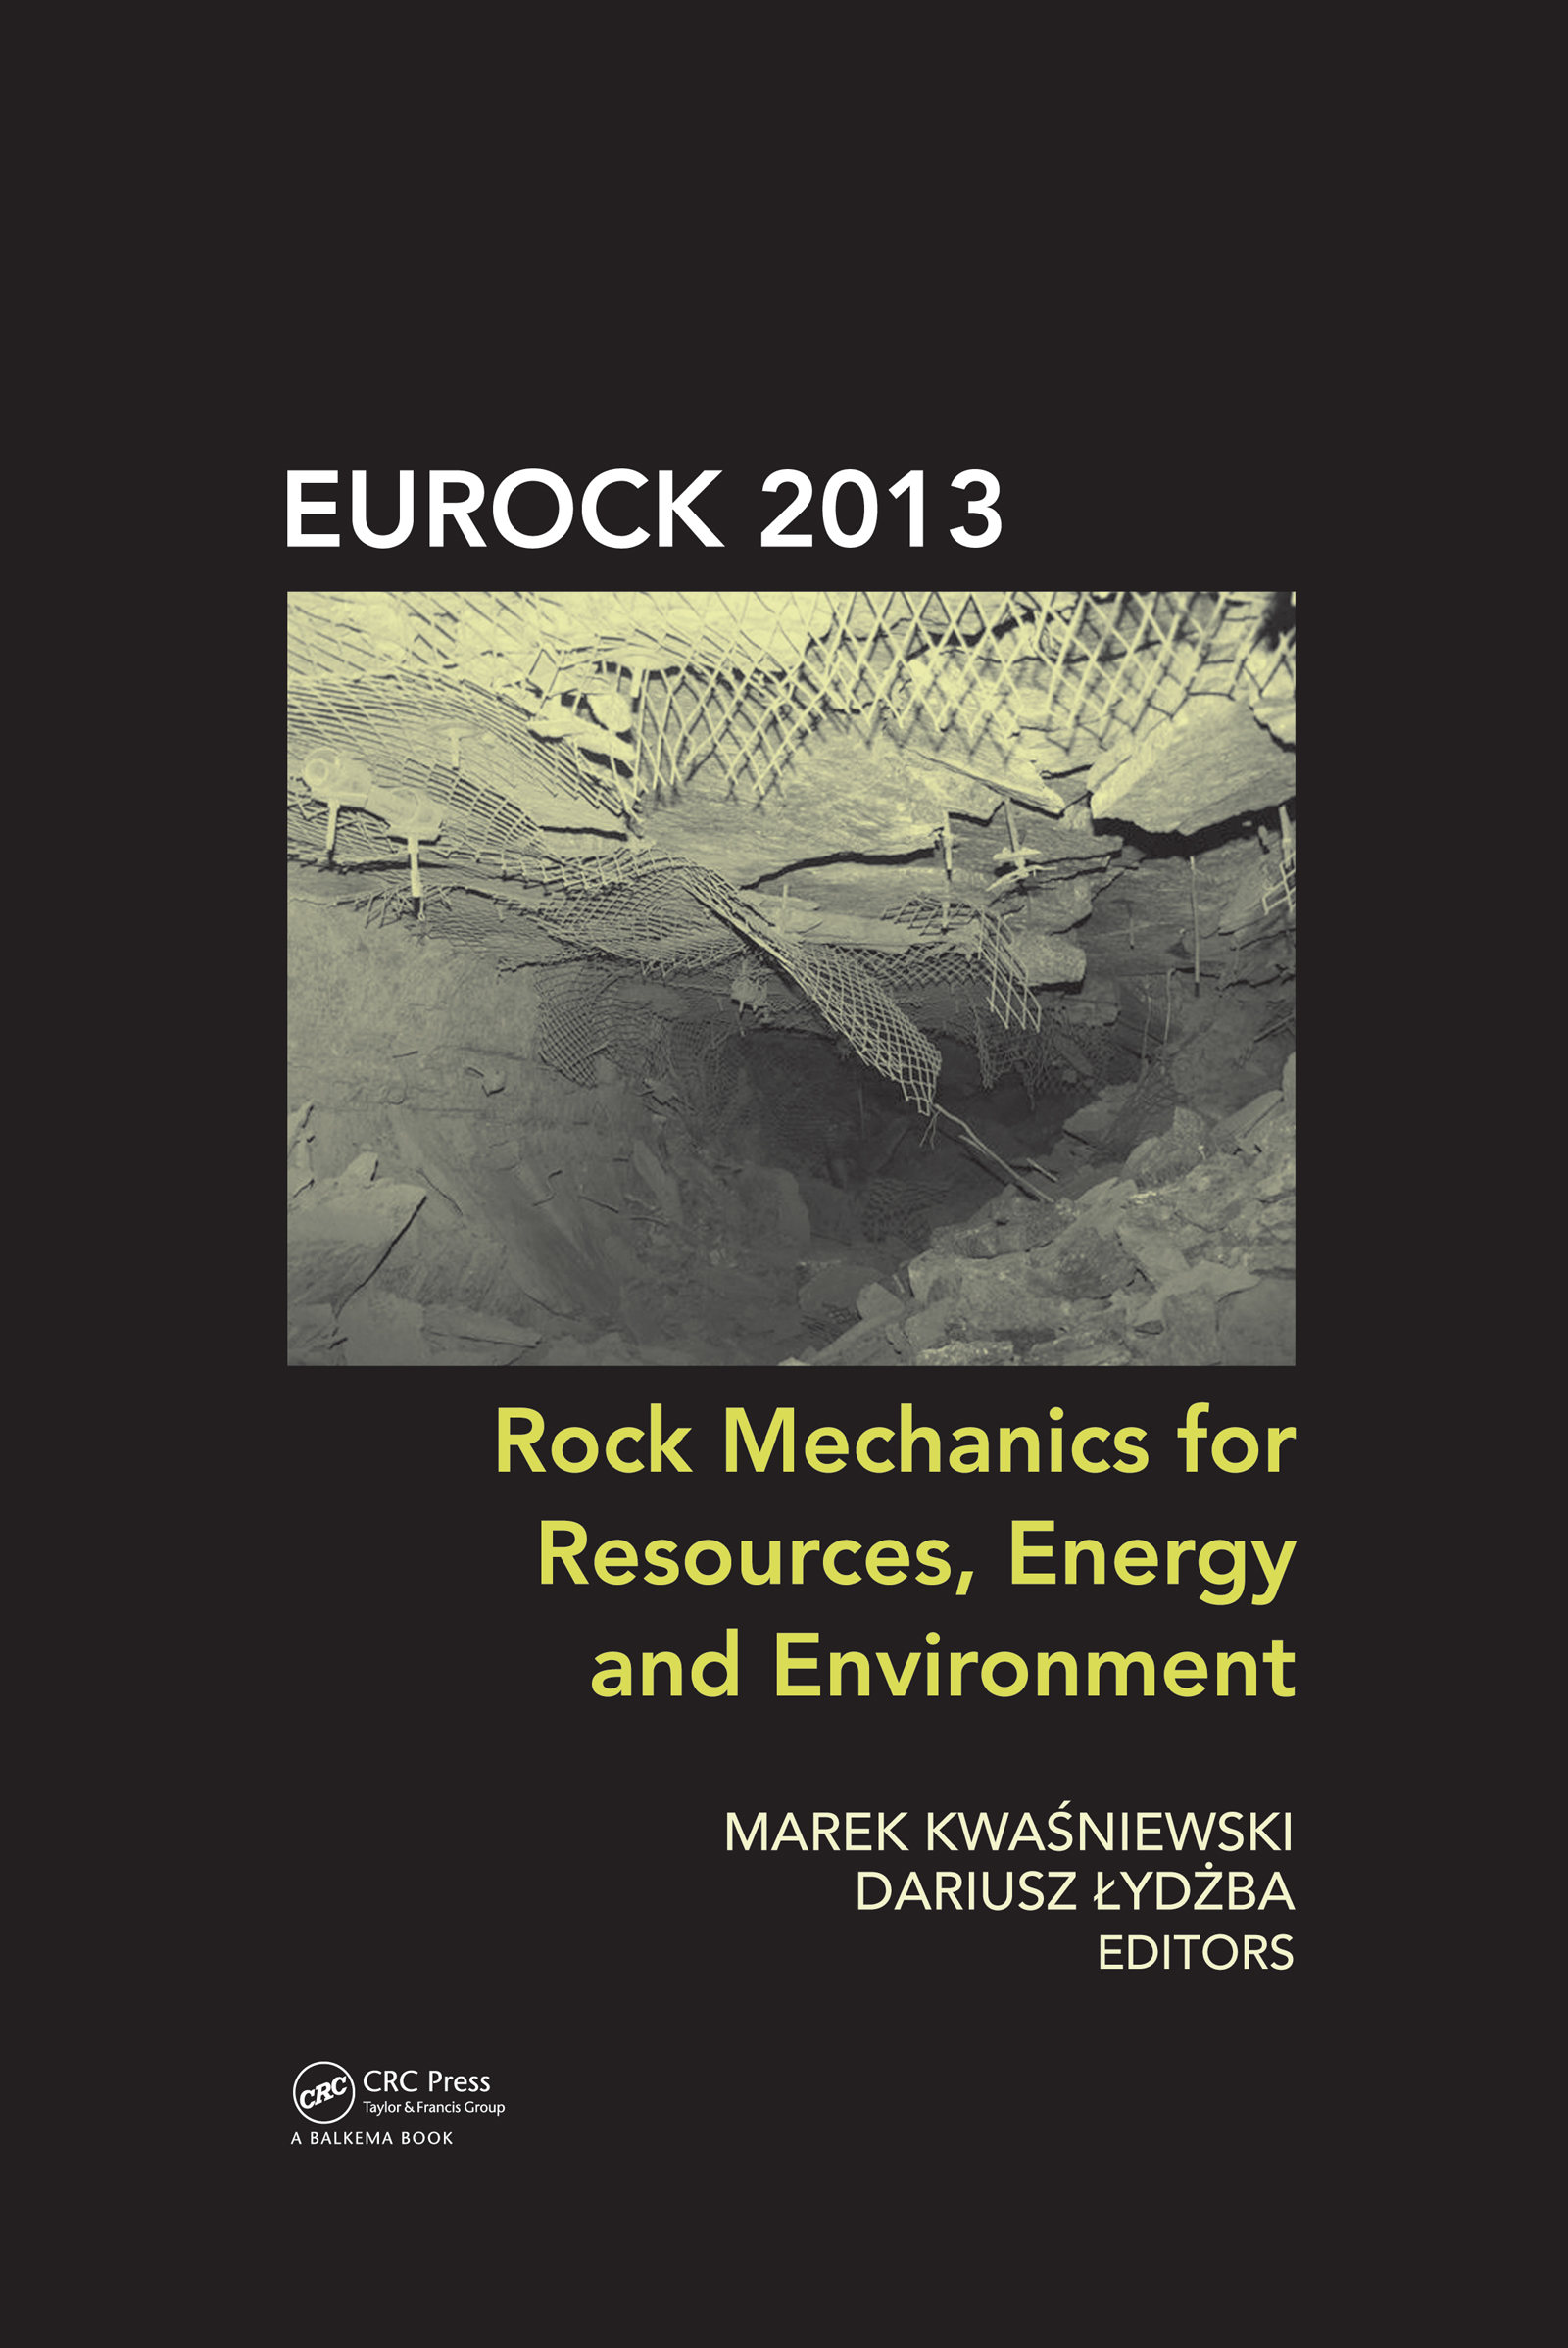 Rock Mechanics for Resources, Energy and Environment: 1st Edition (Pack - Book and CD) book cover